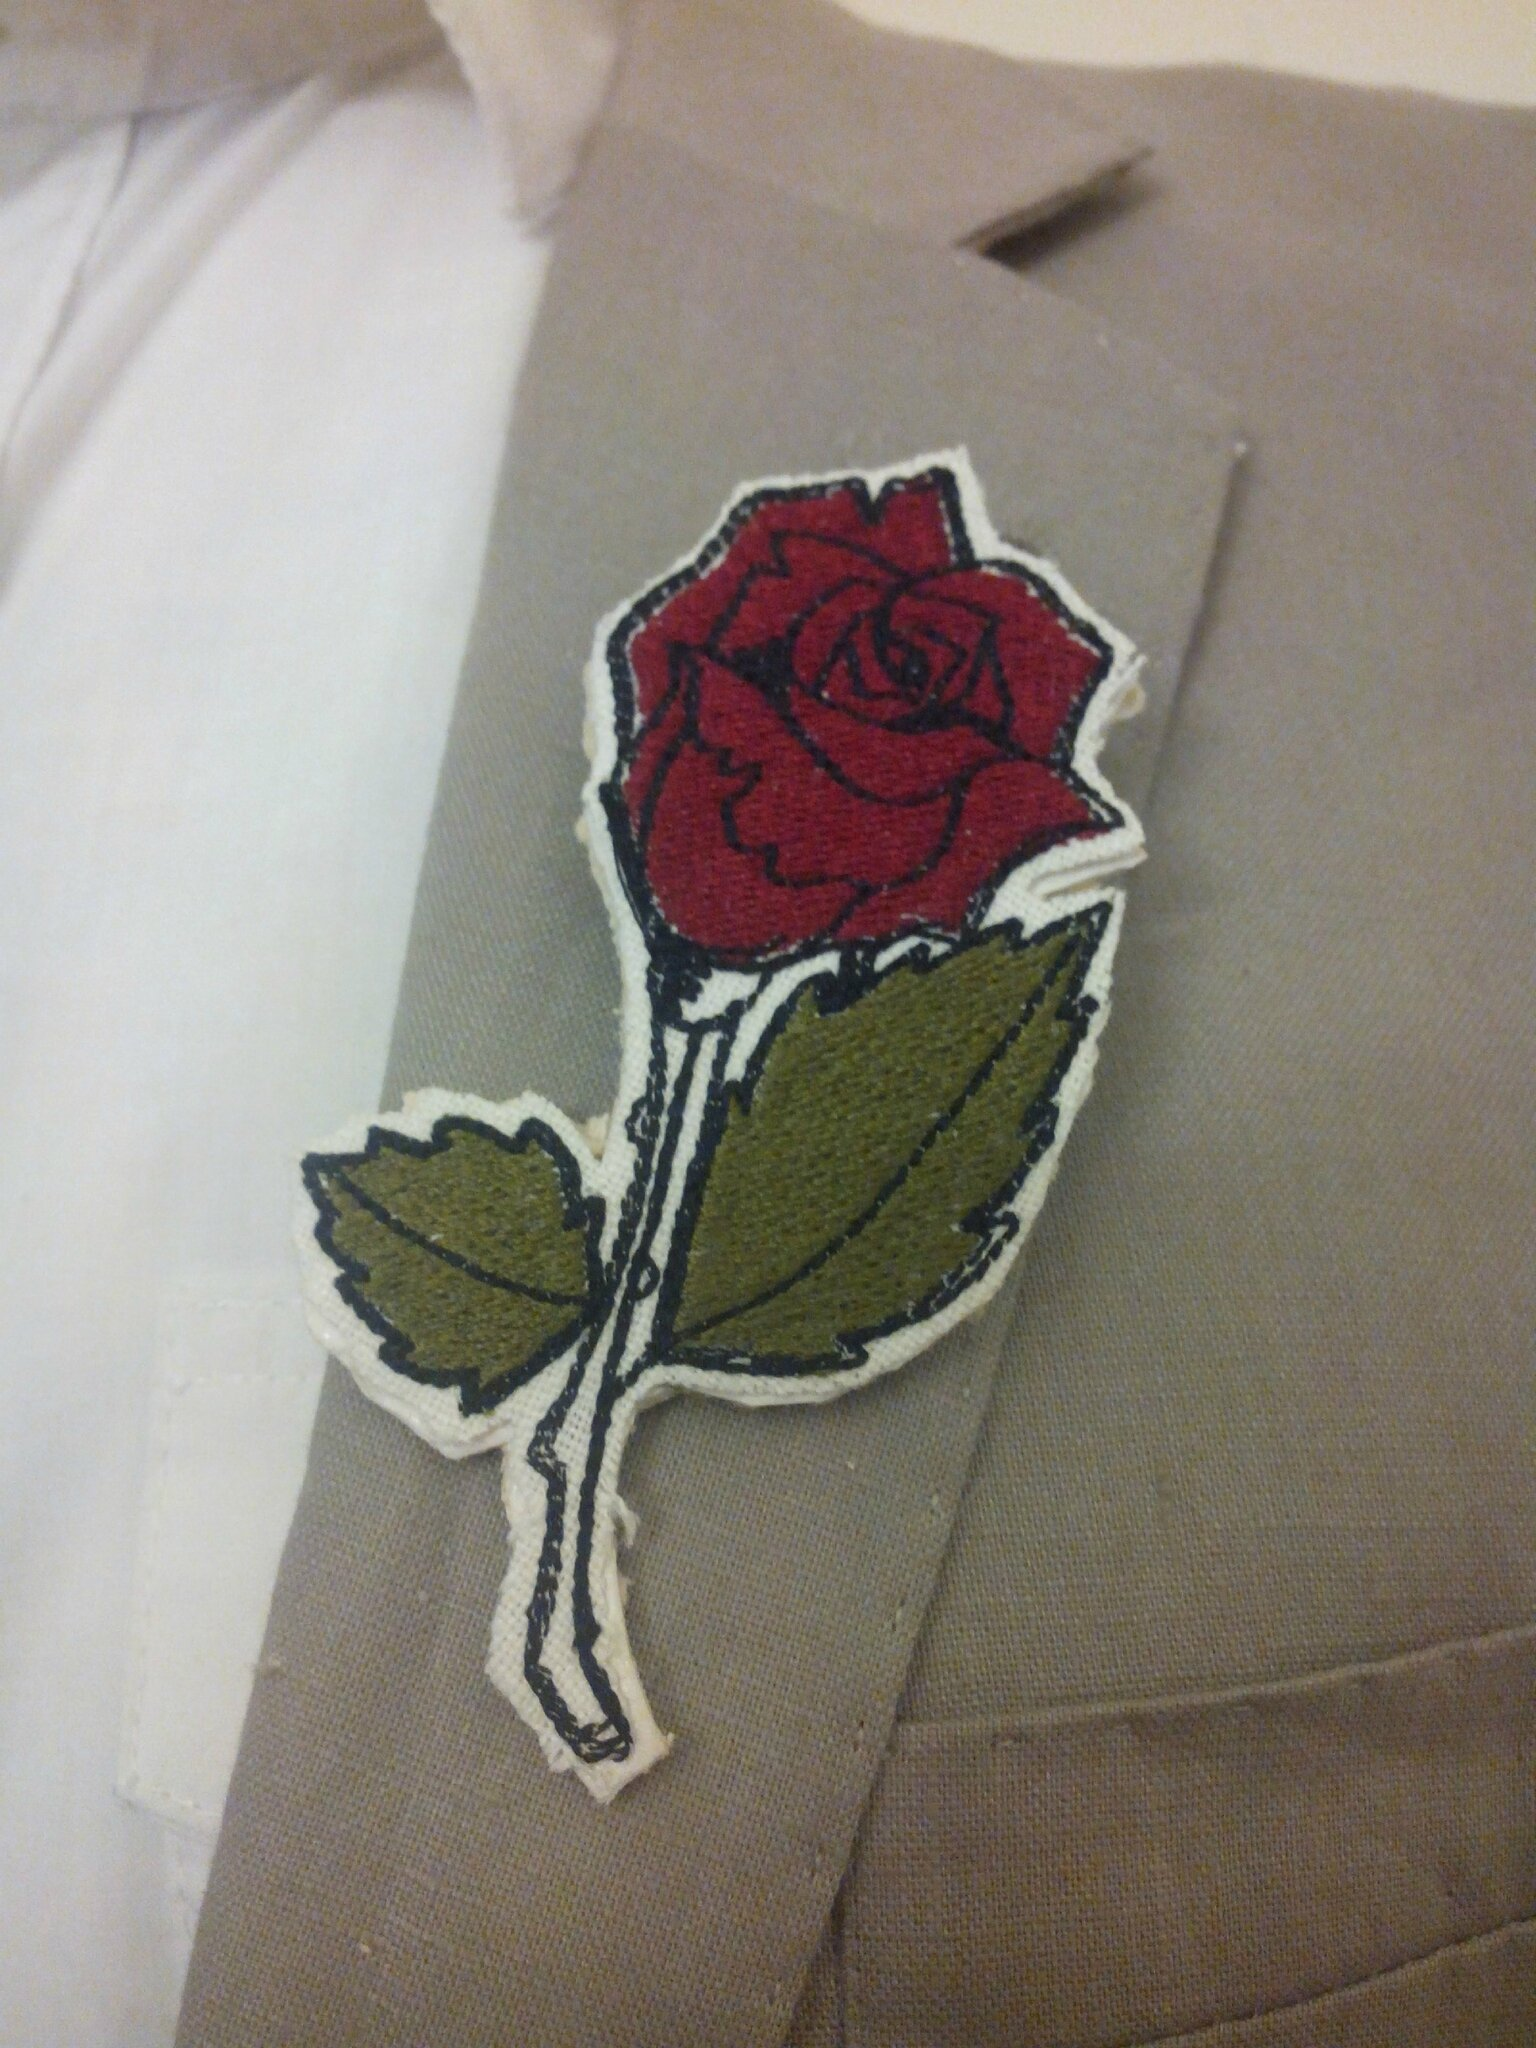 BOUTONNIERE ROSE BRODEE URBAN STYLE CARTOON AMD A COUDRE (8)